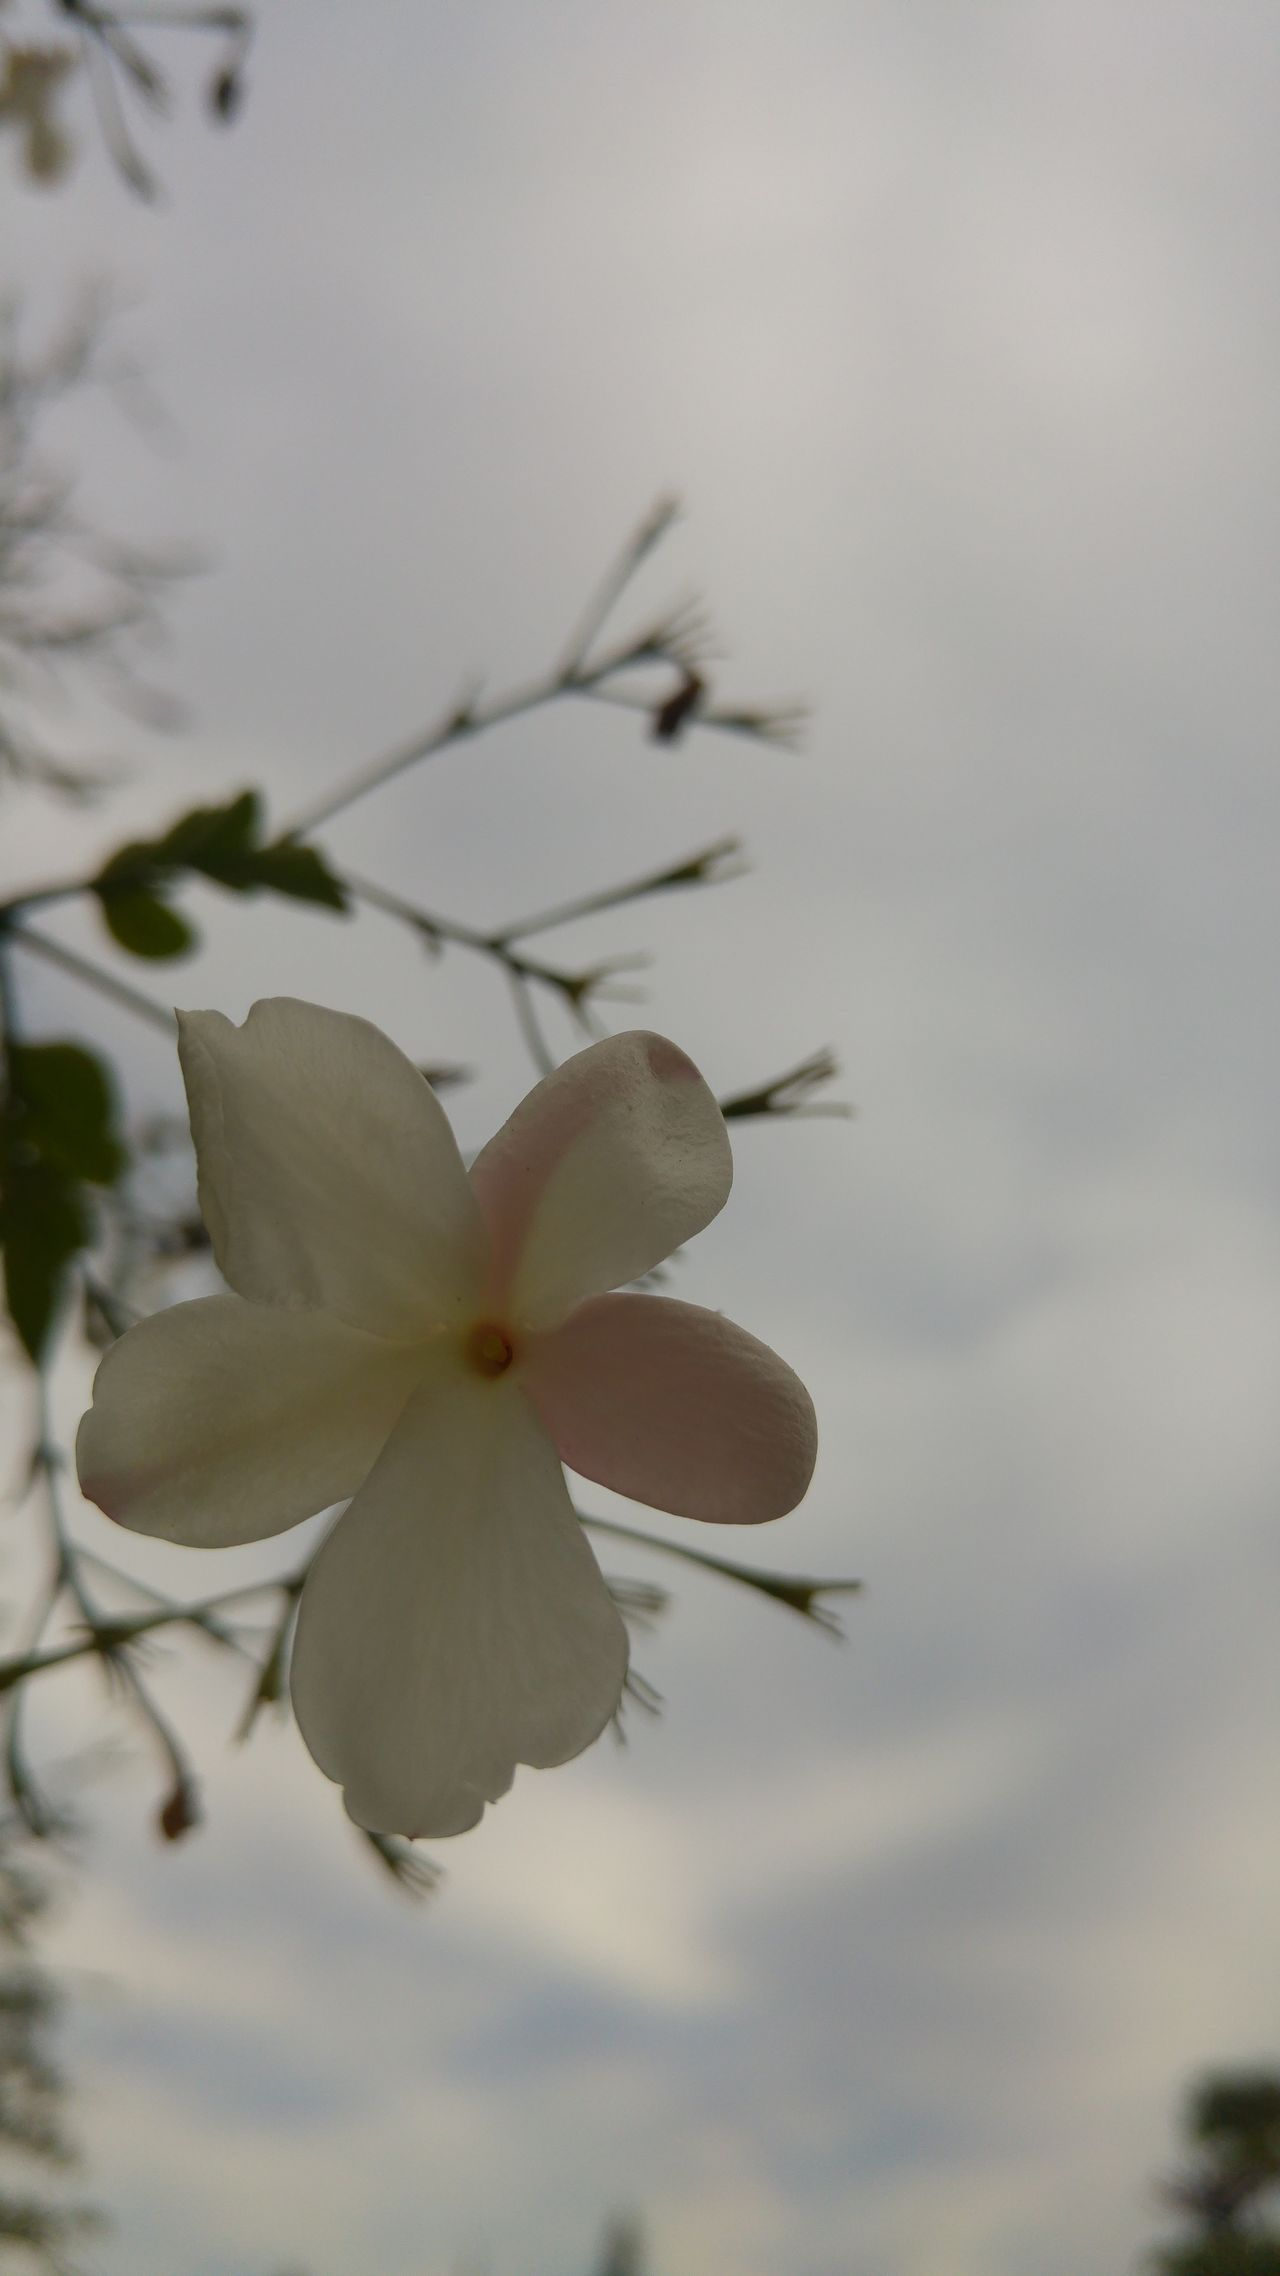 Nature Beauty In Nature Growth Flower No People Plant Freshness Springtime Close-up Outdoors Fragility Day Flower Head Sky Jasmine Jasmine Flower